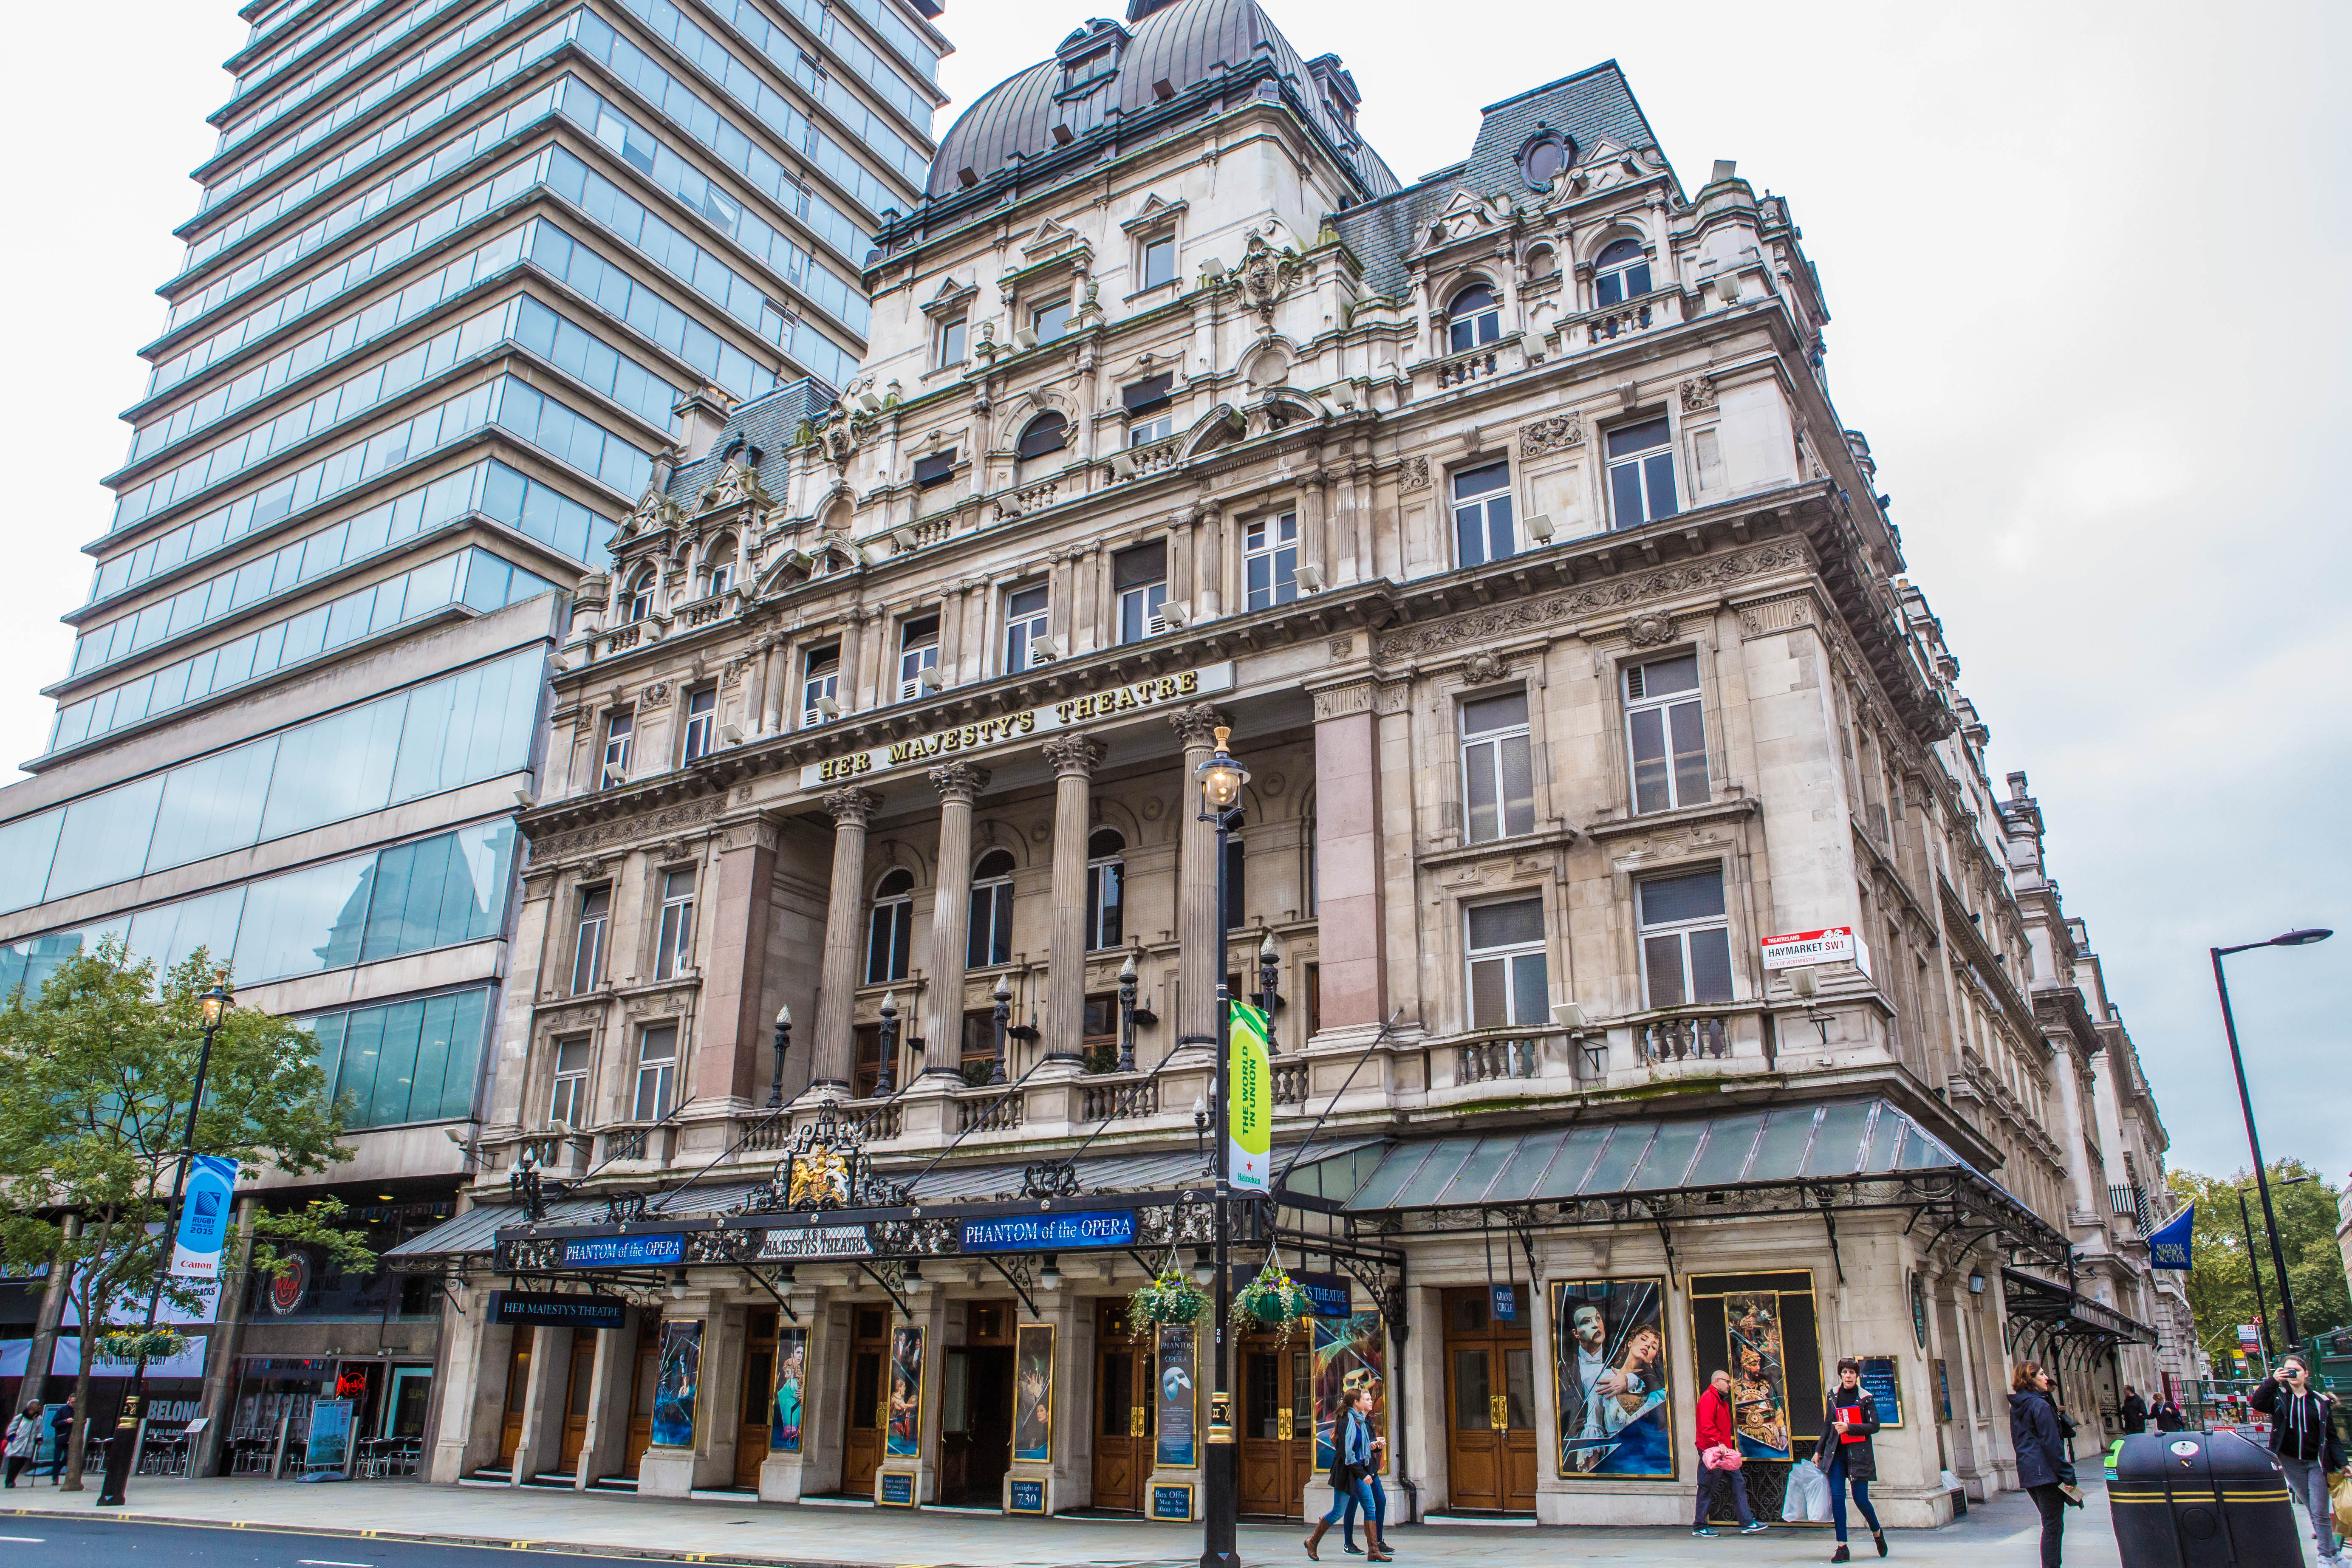 Her Majesty's Theatre, one of our new venues for 2015 where we will be running our Acting masterclasses